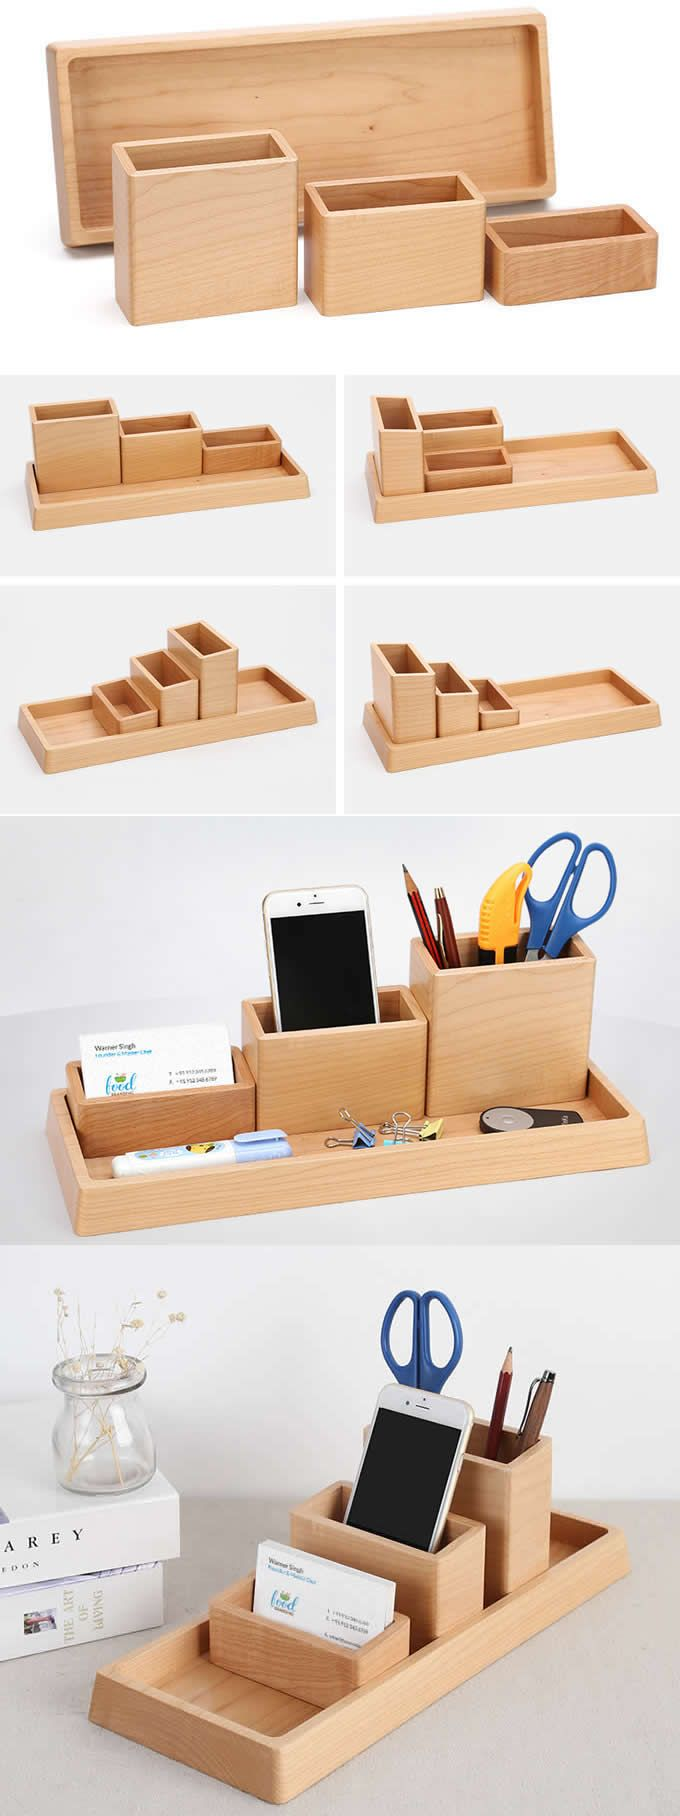 4 Compartments Wooden Office Desk Organizer Collection Smart Phone Dock Holder Pen Pencils Holder Business Card Stand Holder Desk Supplies Stationary Organizer Set